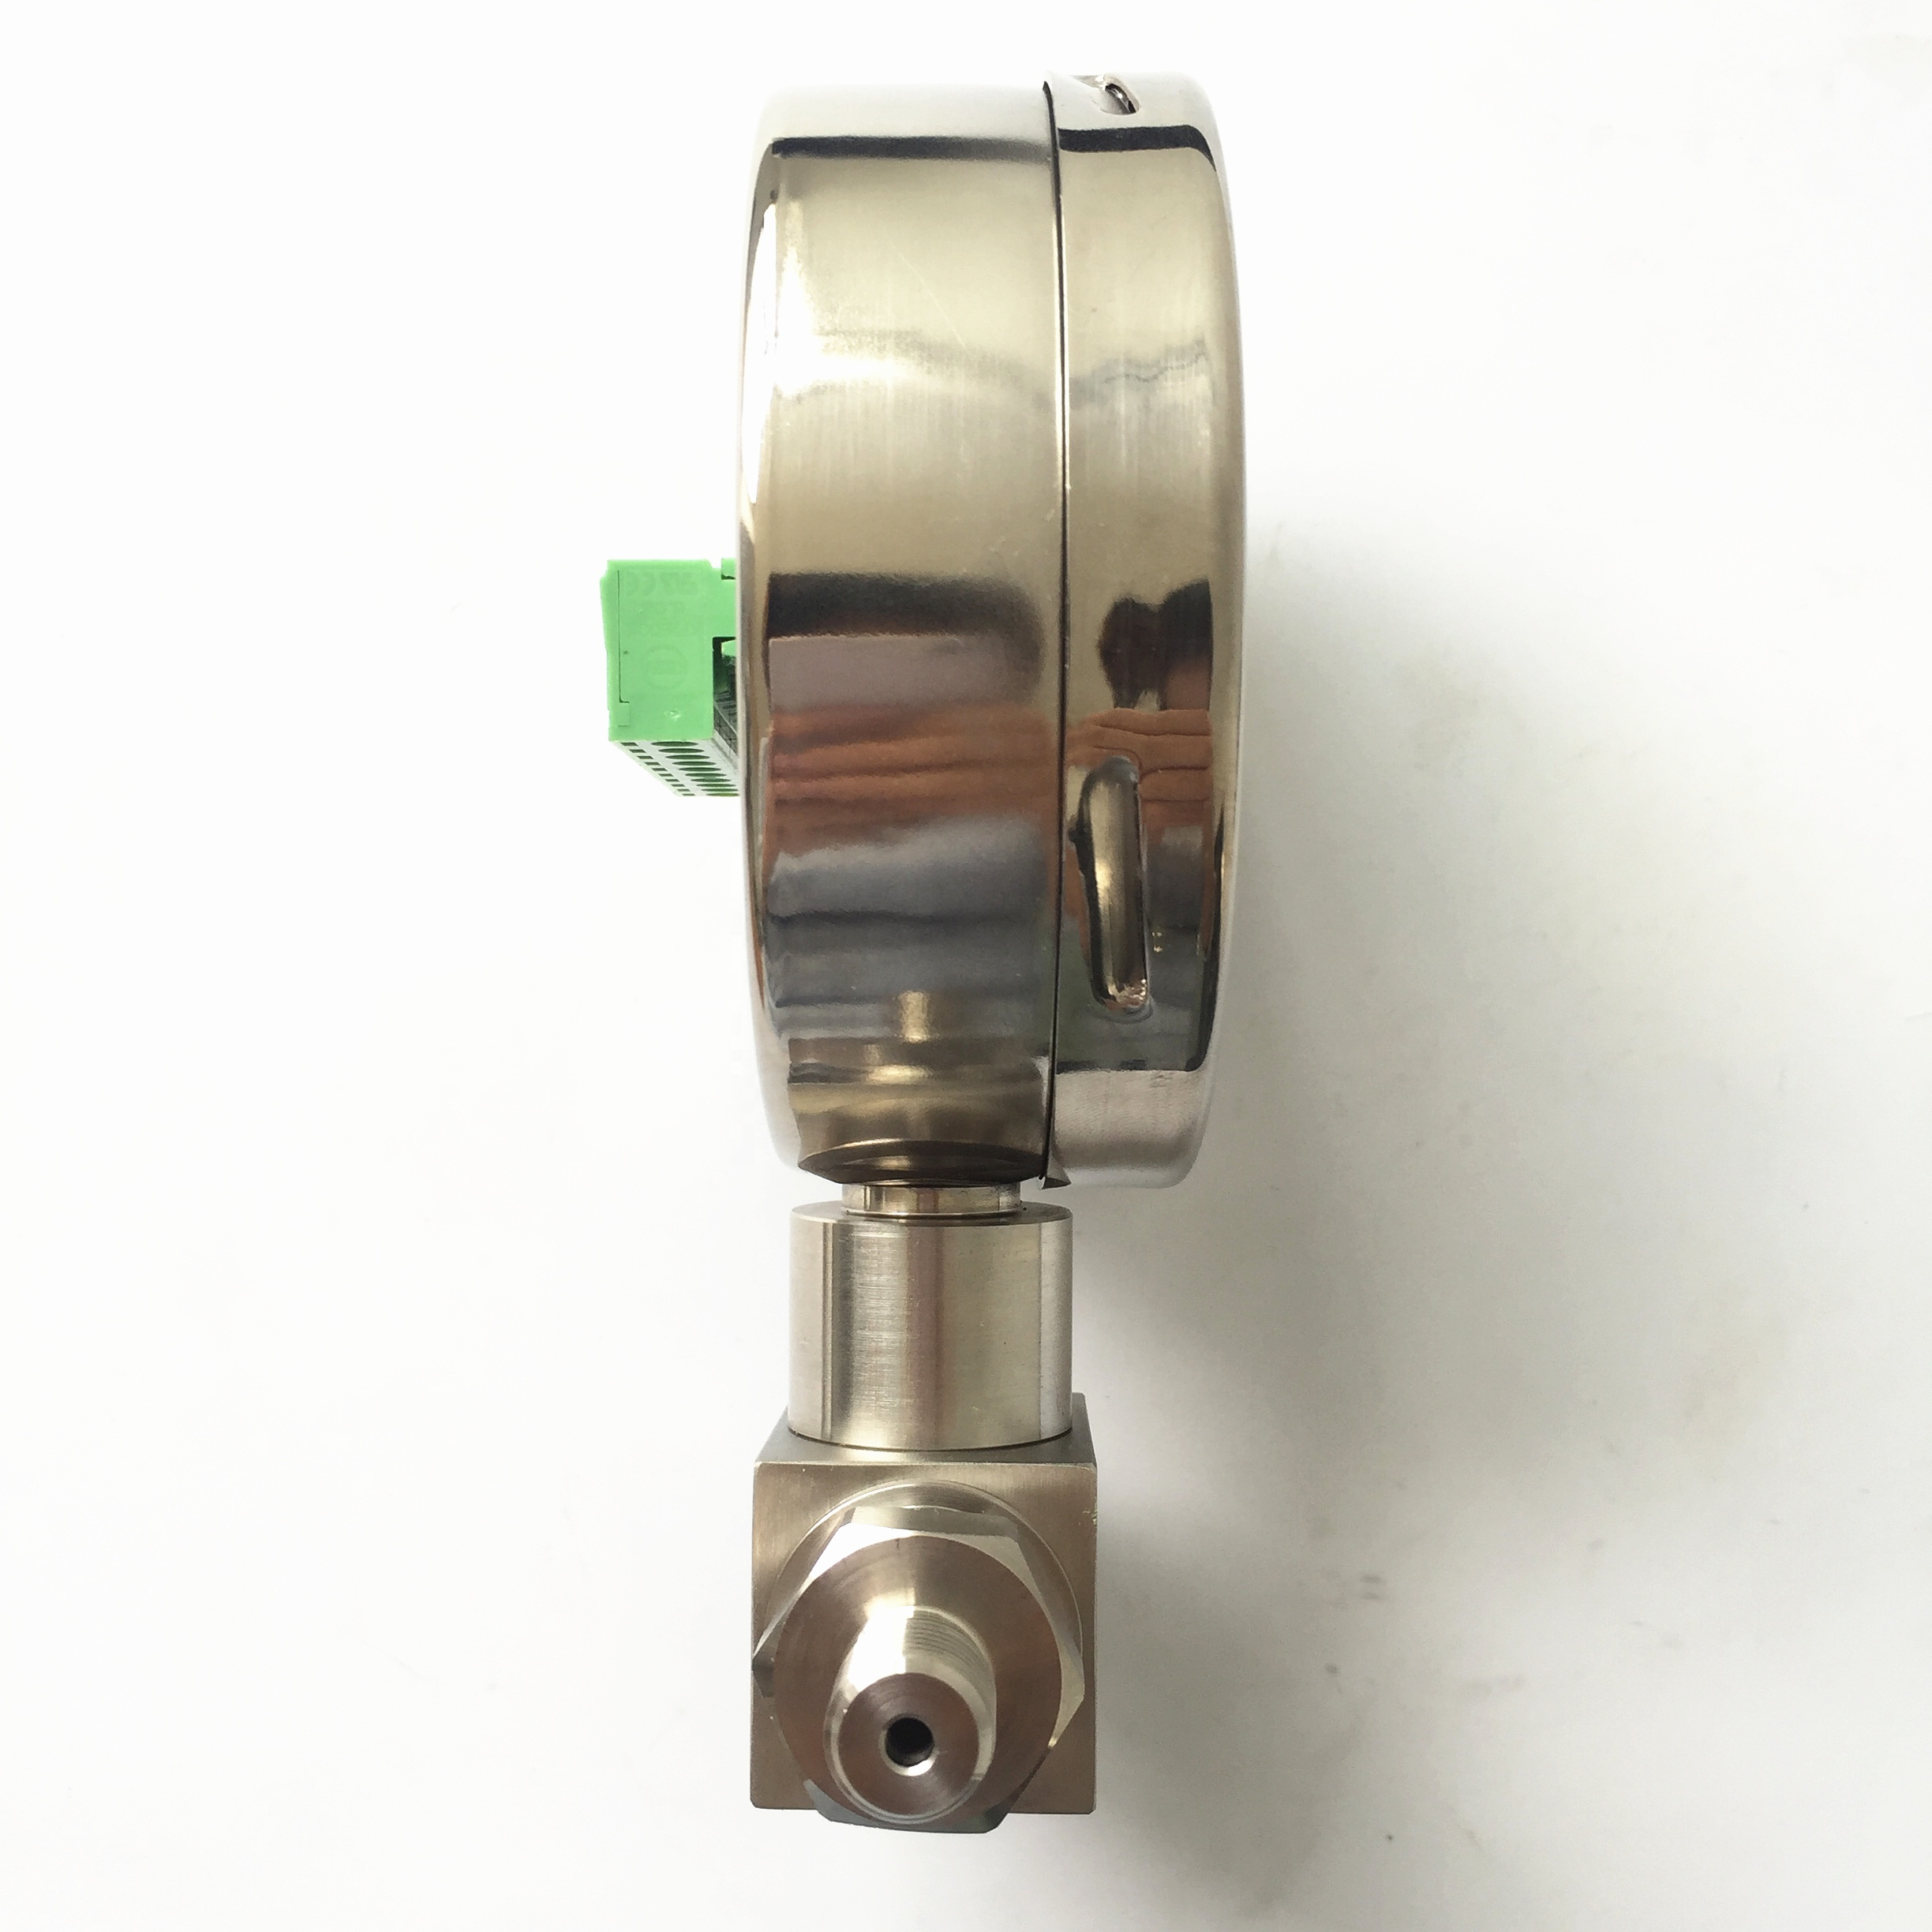 Different Pressure Transmitter Differential Pressure Transducer Pressure Transmitter with LED Display